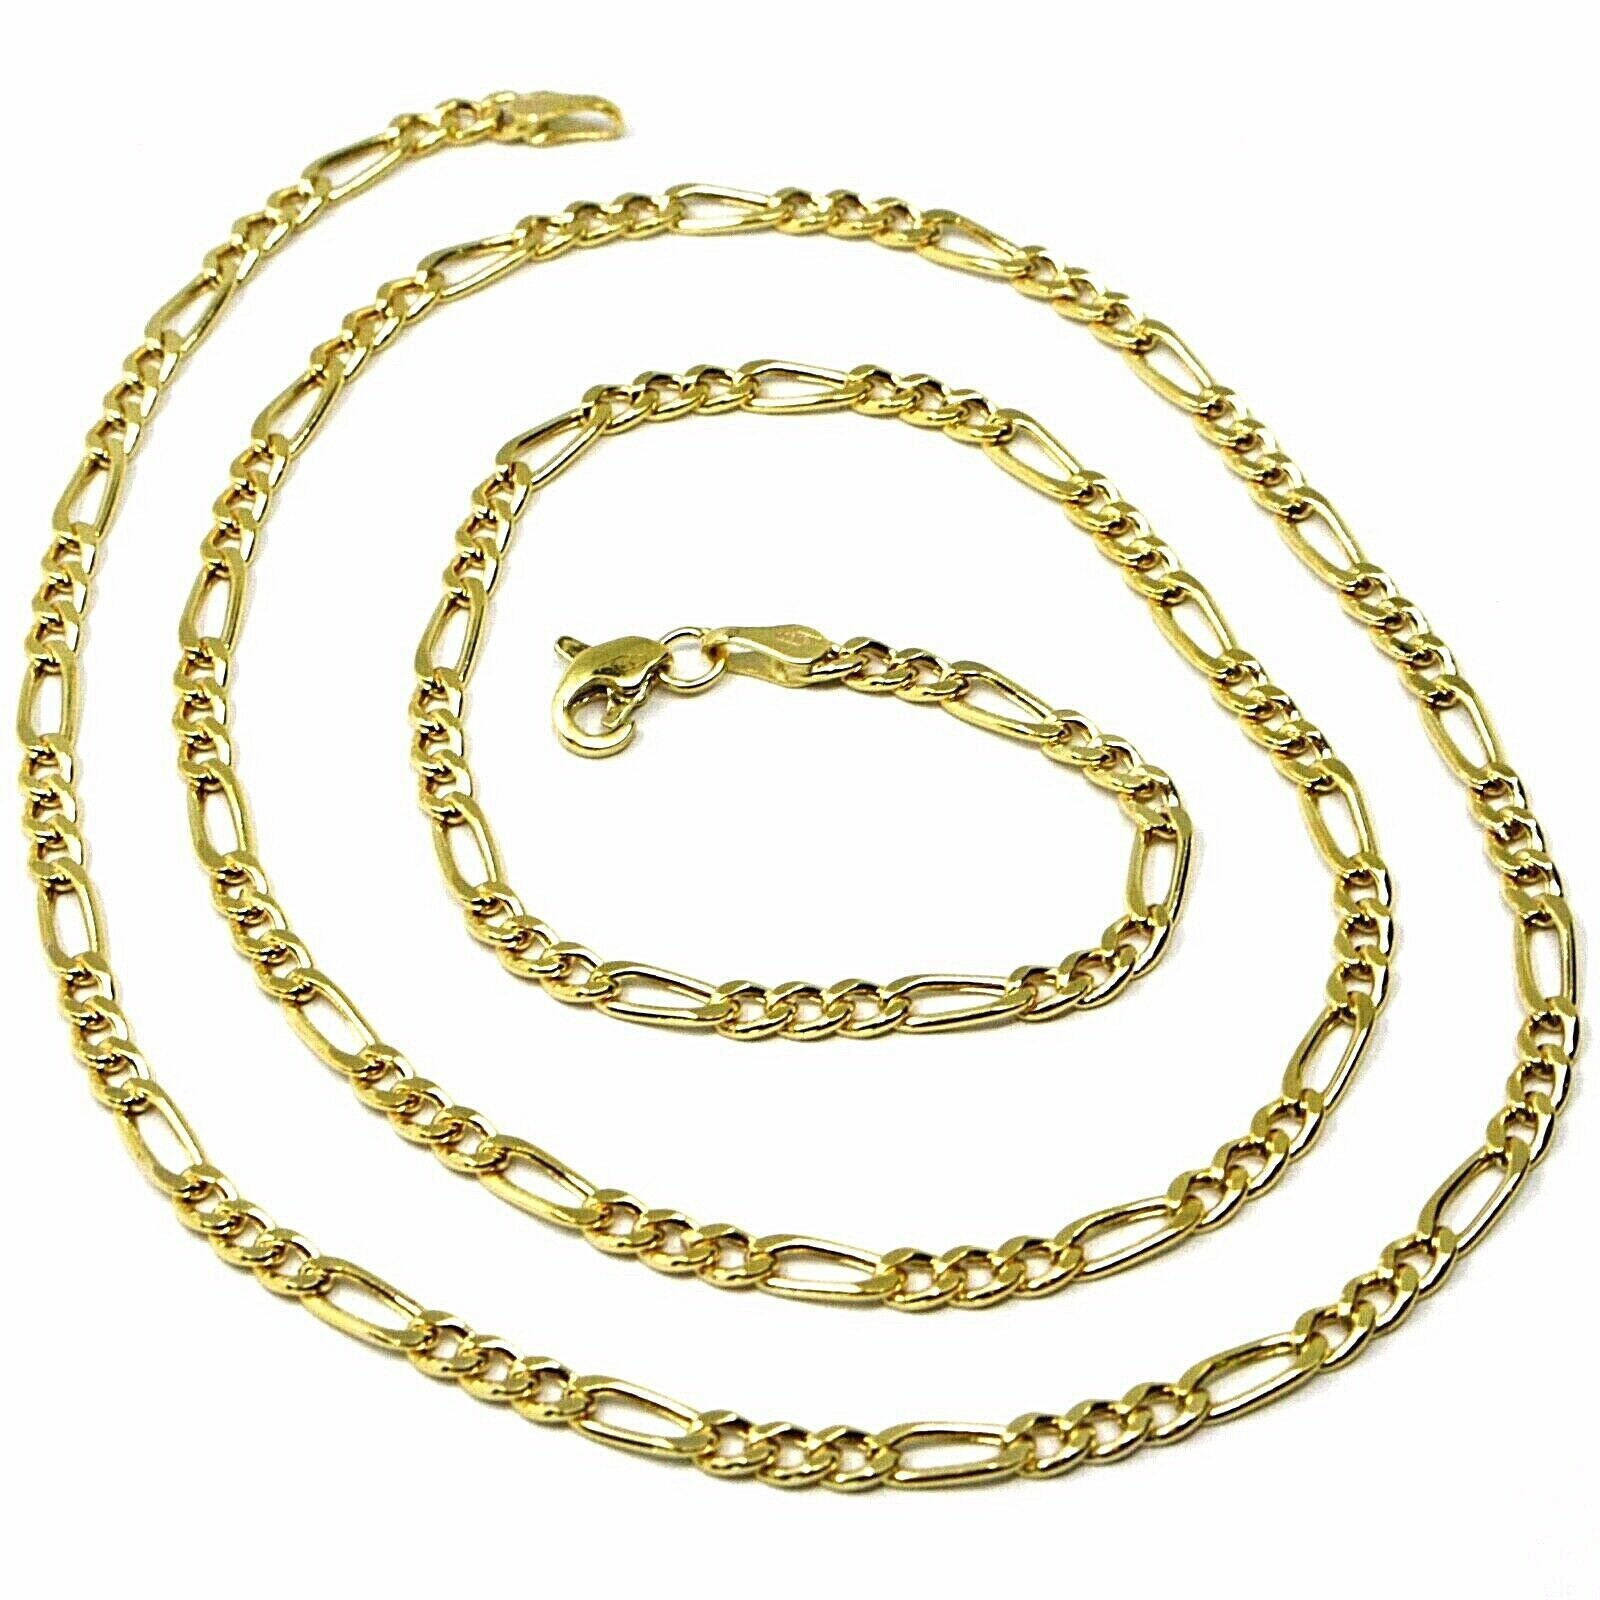 9K GOLD CHAIN FIGARO GOURMETTE ALTERNATE 3+1 FLAT LINKS 3mm, 50cm, 20 INCHES